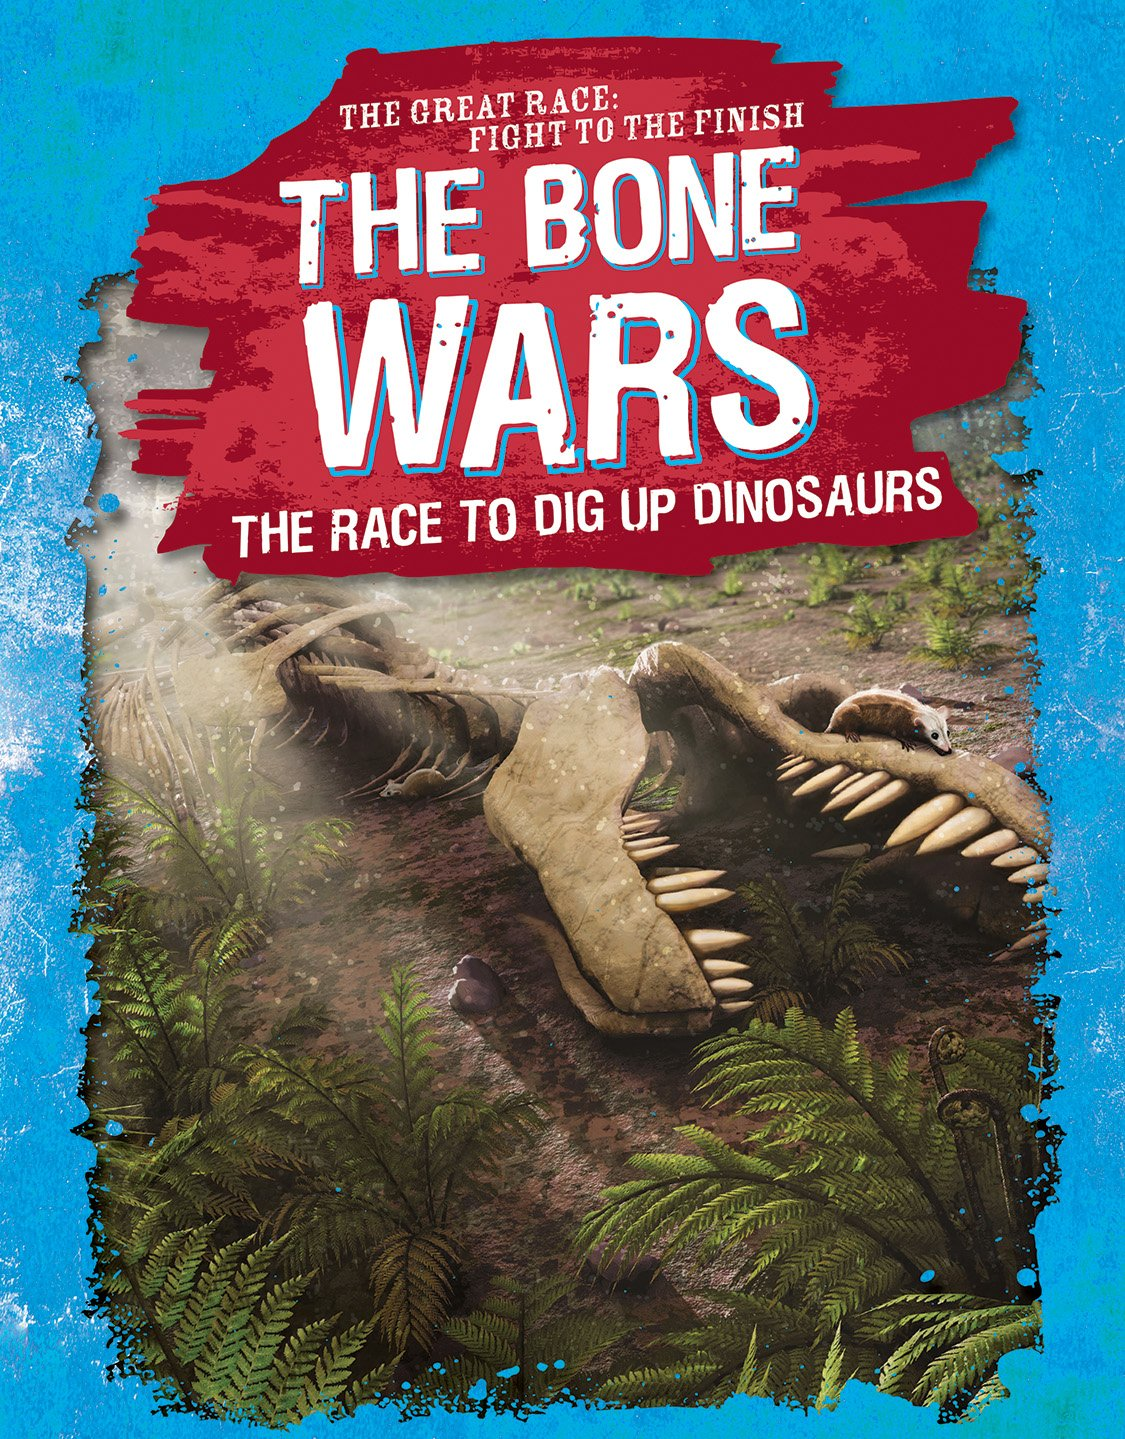 The Bone Wars: The Race to Dig Up Dinosaurs (Great Race: Fight to the Finish)